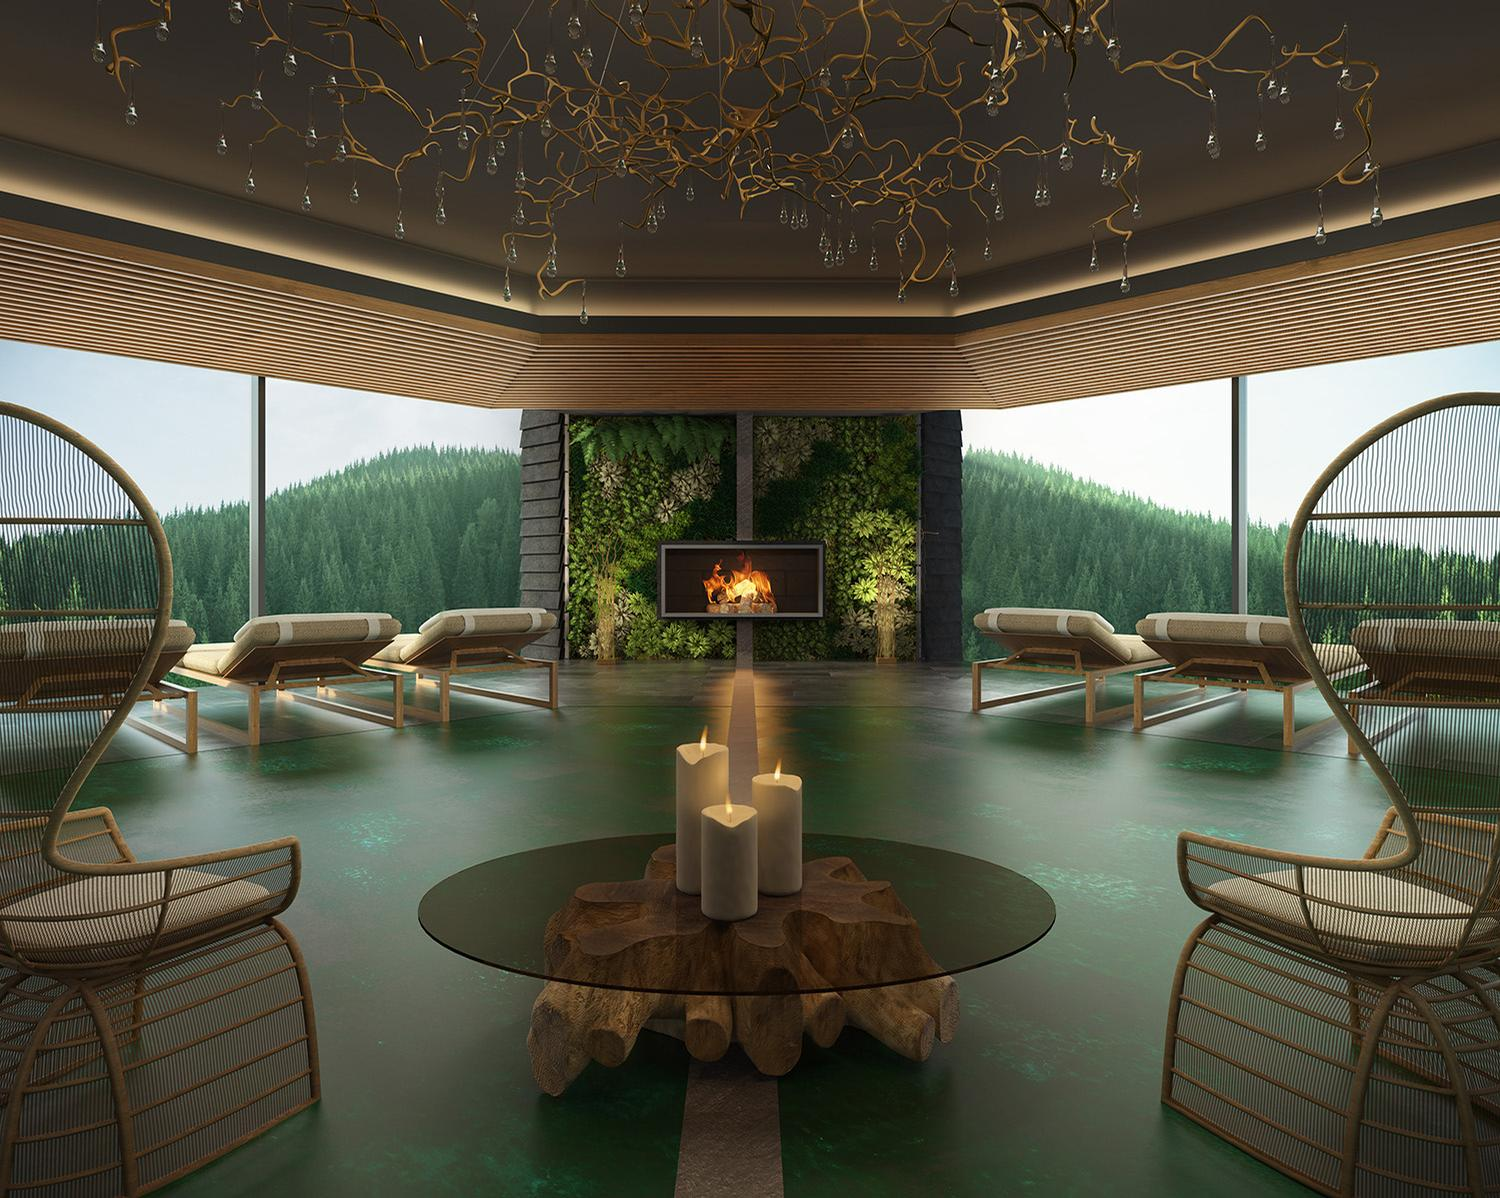 Hugo Demetz and Alberto Apostoli create luxury eco resort, spa and residences for Lefay in the Italian Dolomites